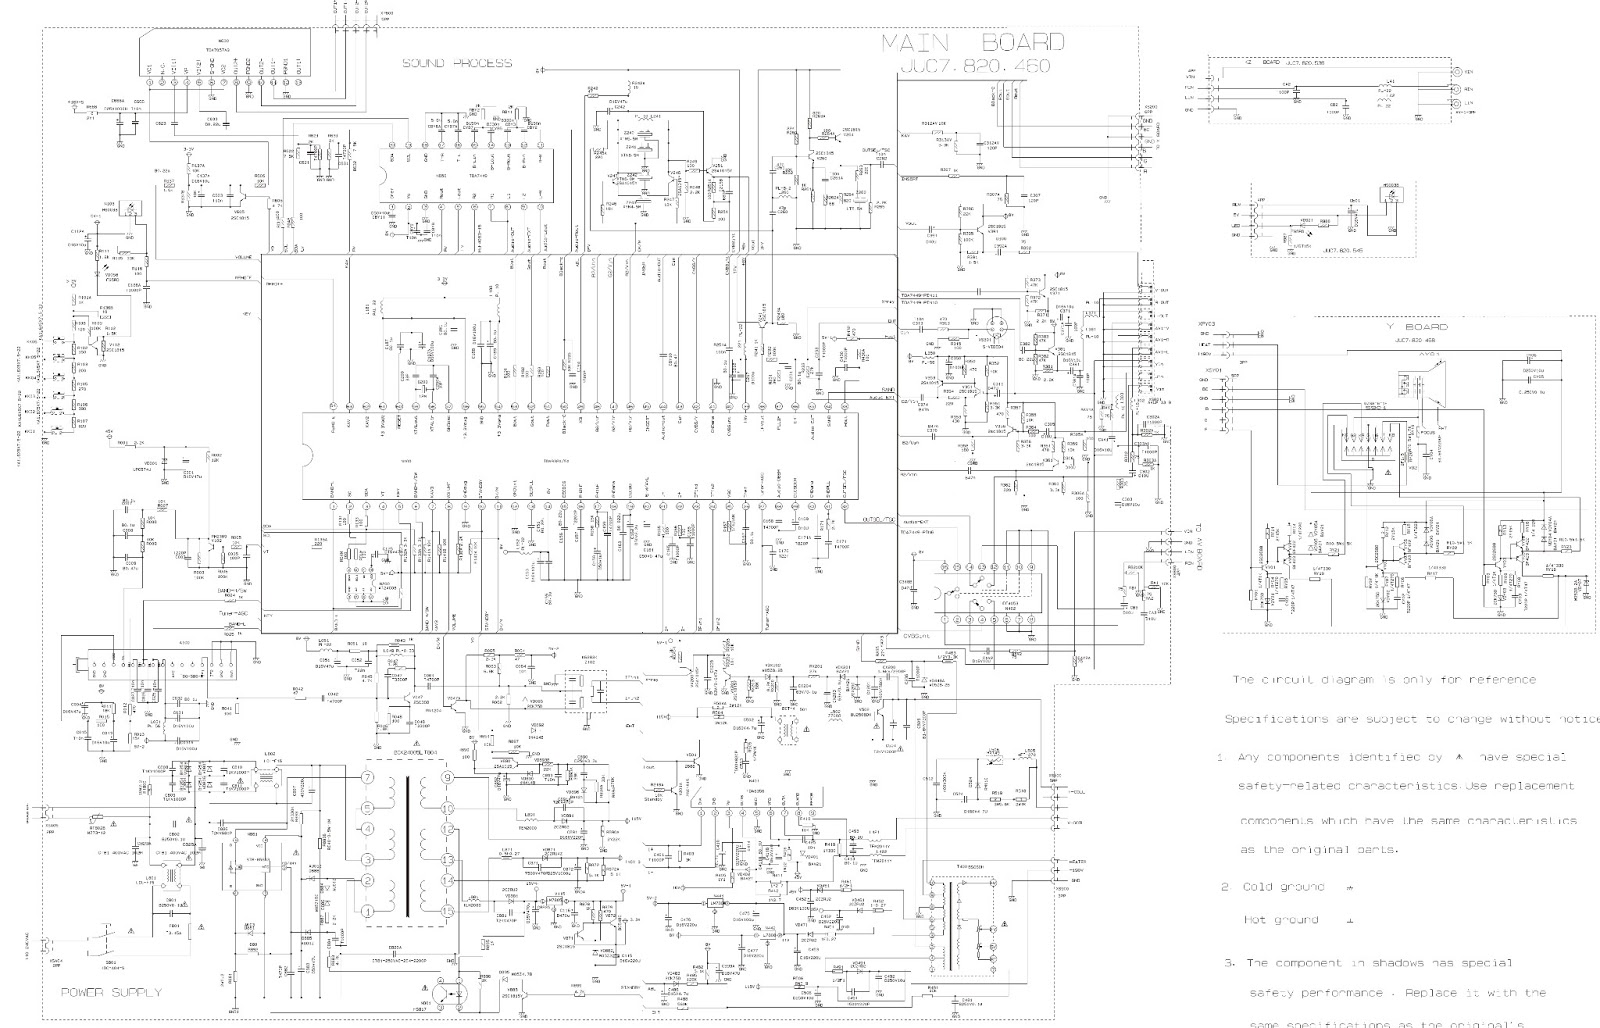 VIDEOCON 21NF55 - 21PF93 - SCHEMATIC DIAGRAM (Circuit